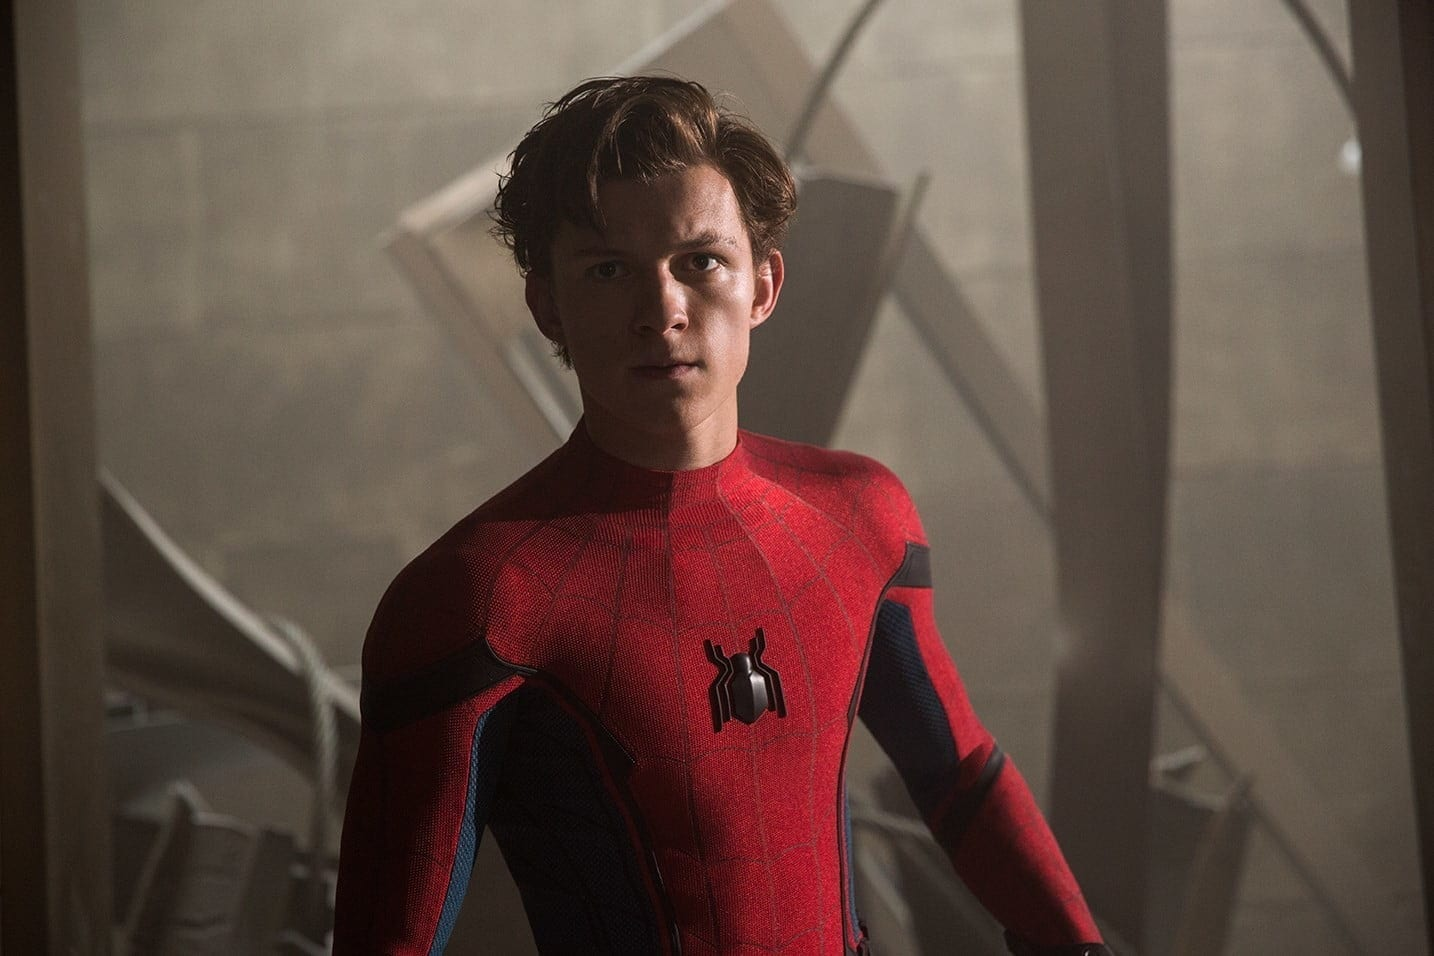 Tobey Maguire and Andrew Garfield May Be In The Next Spider-Man